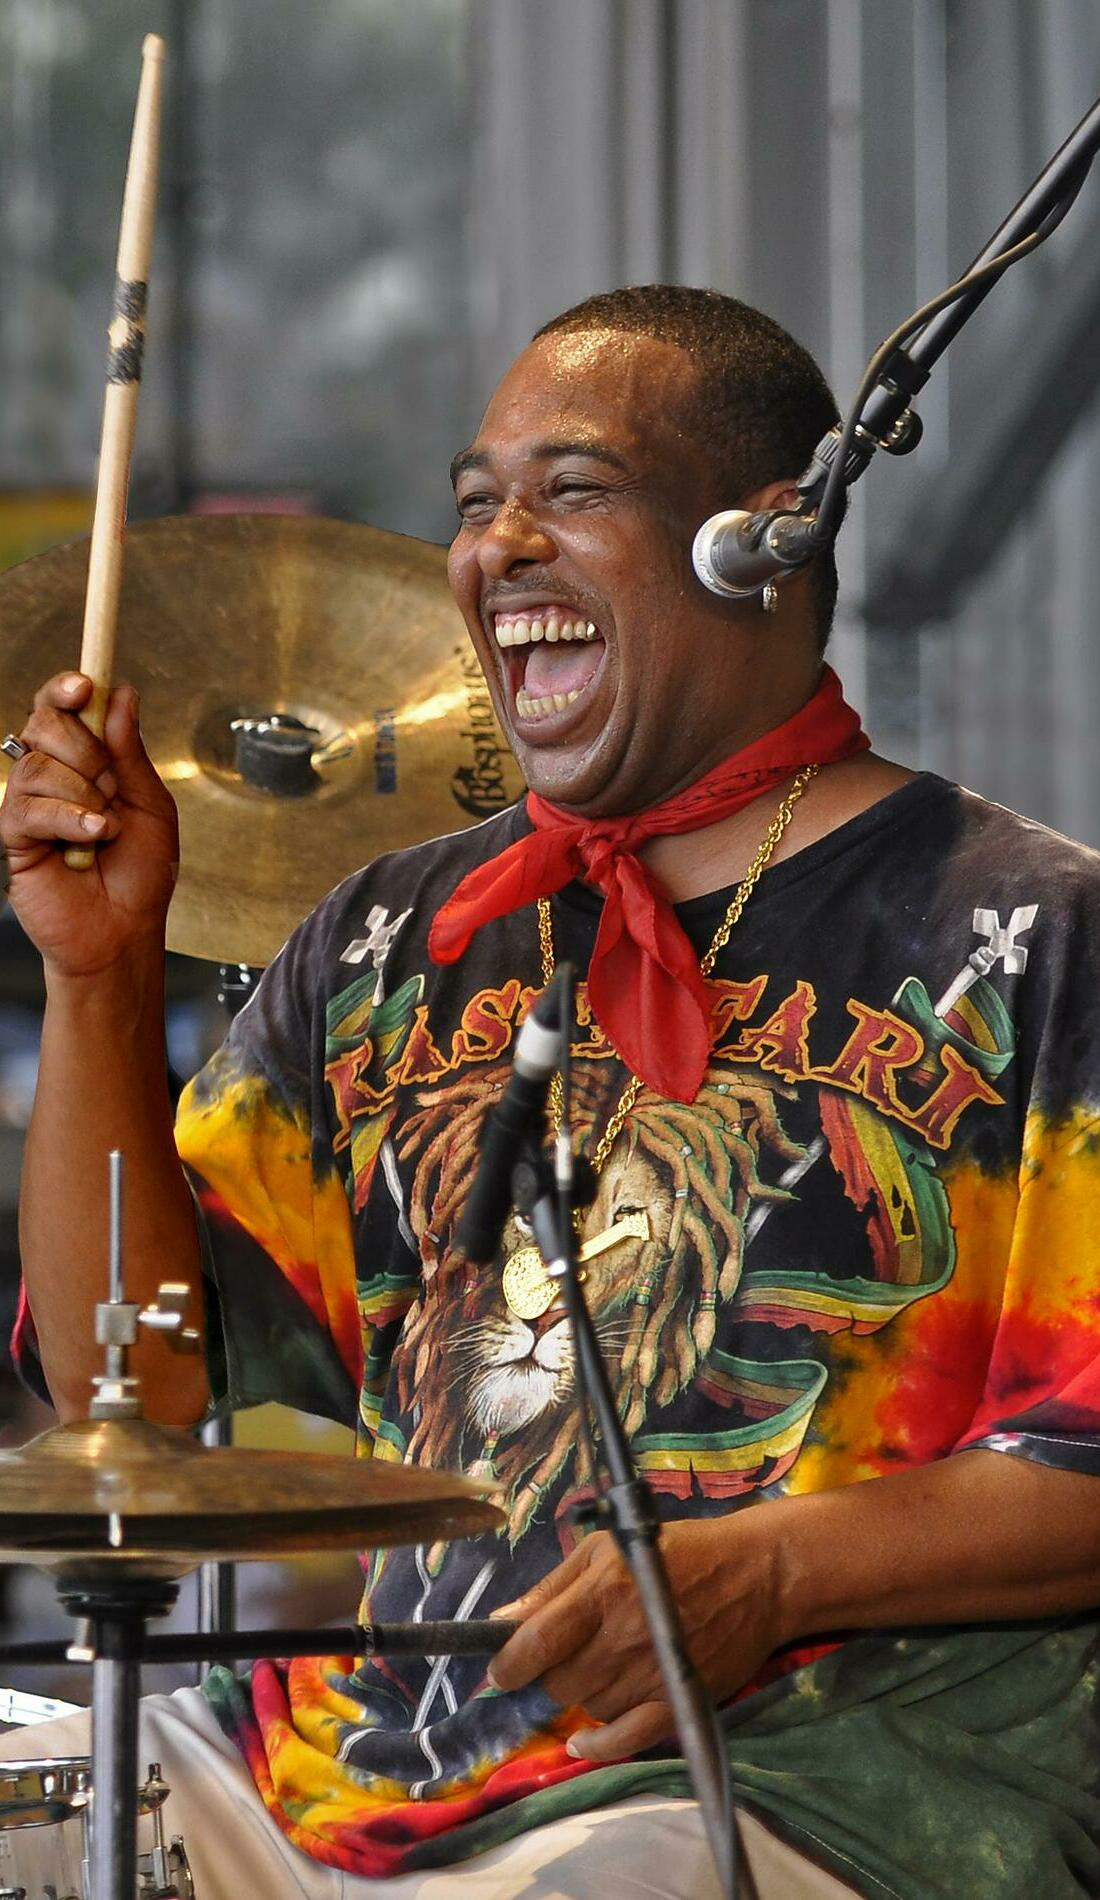 A Russell Batiste live event